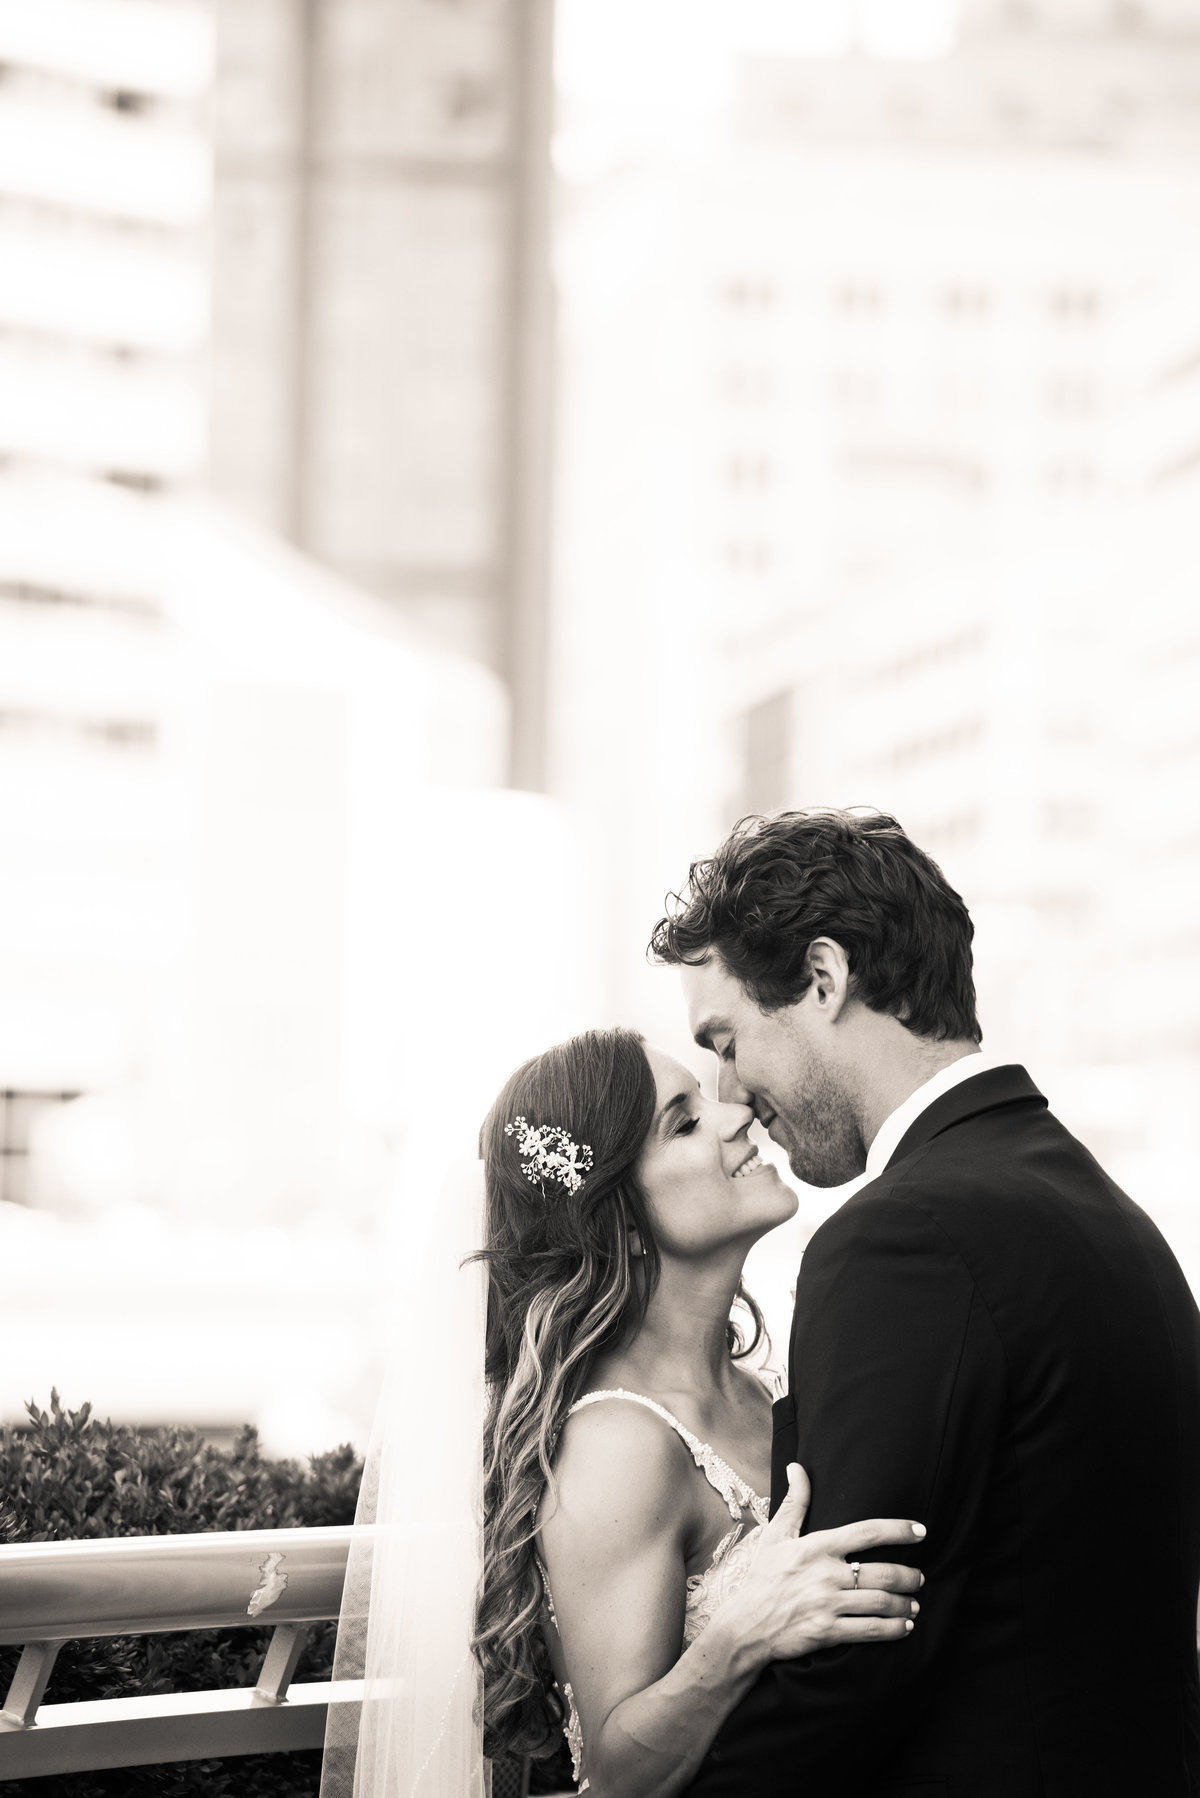 Married couple kiss, Chicago wedding, urban portrait, Riverwalk.